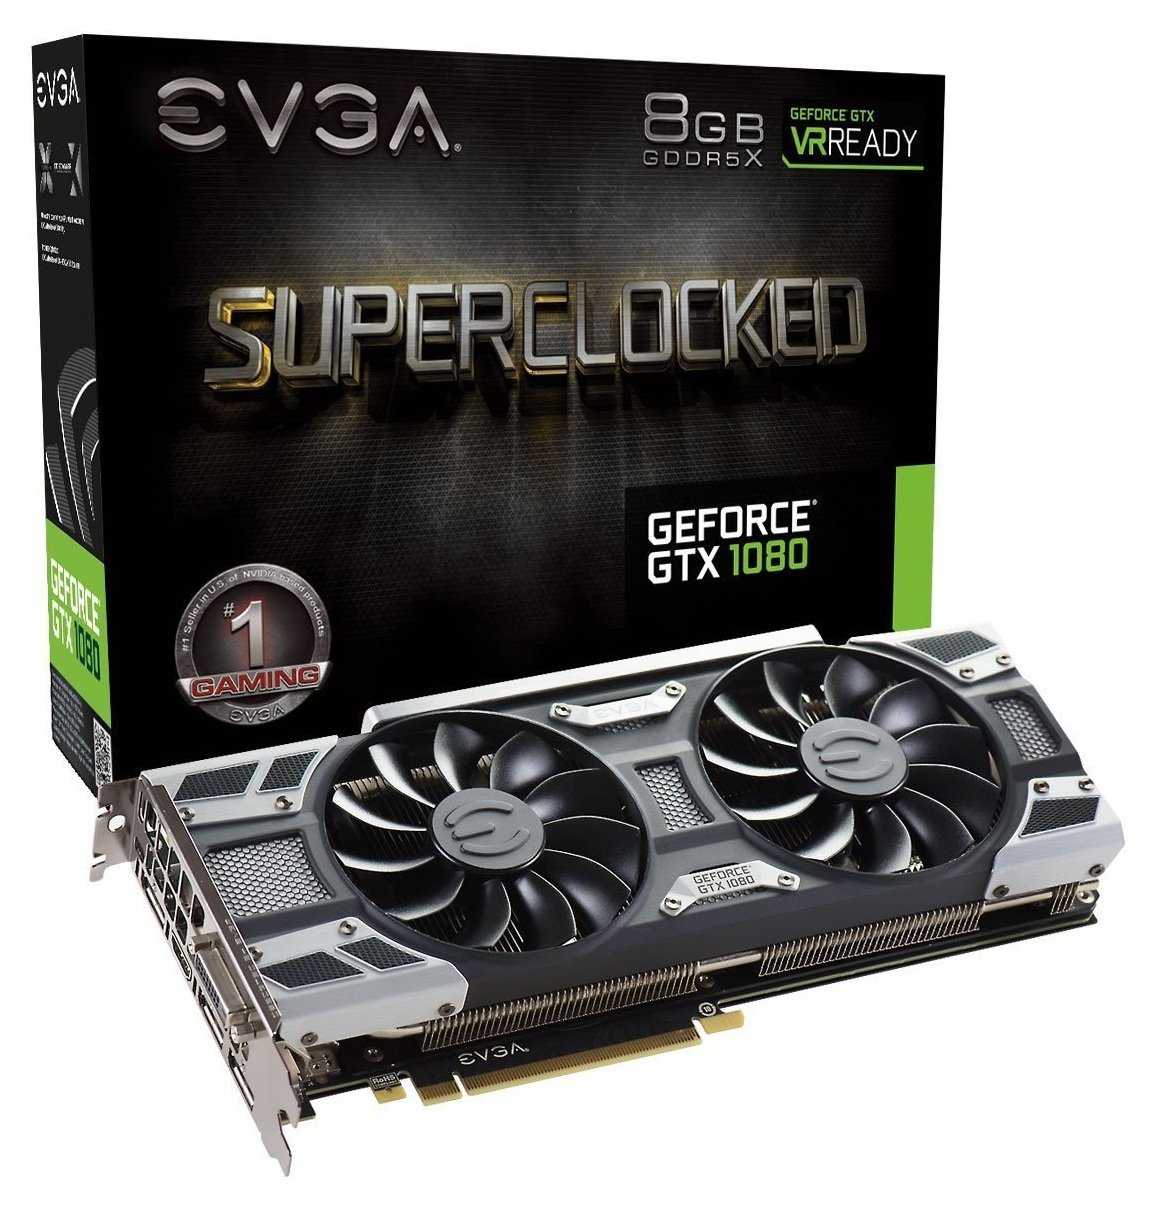 Click here for EVGA NVIDIA Geforce GTX 1080 8GB Gaming Graphics Card. prices